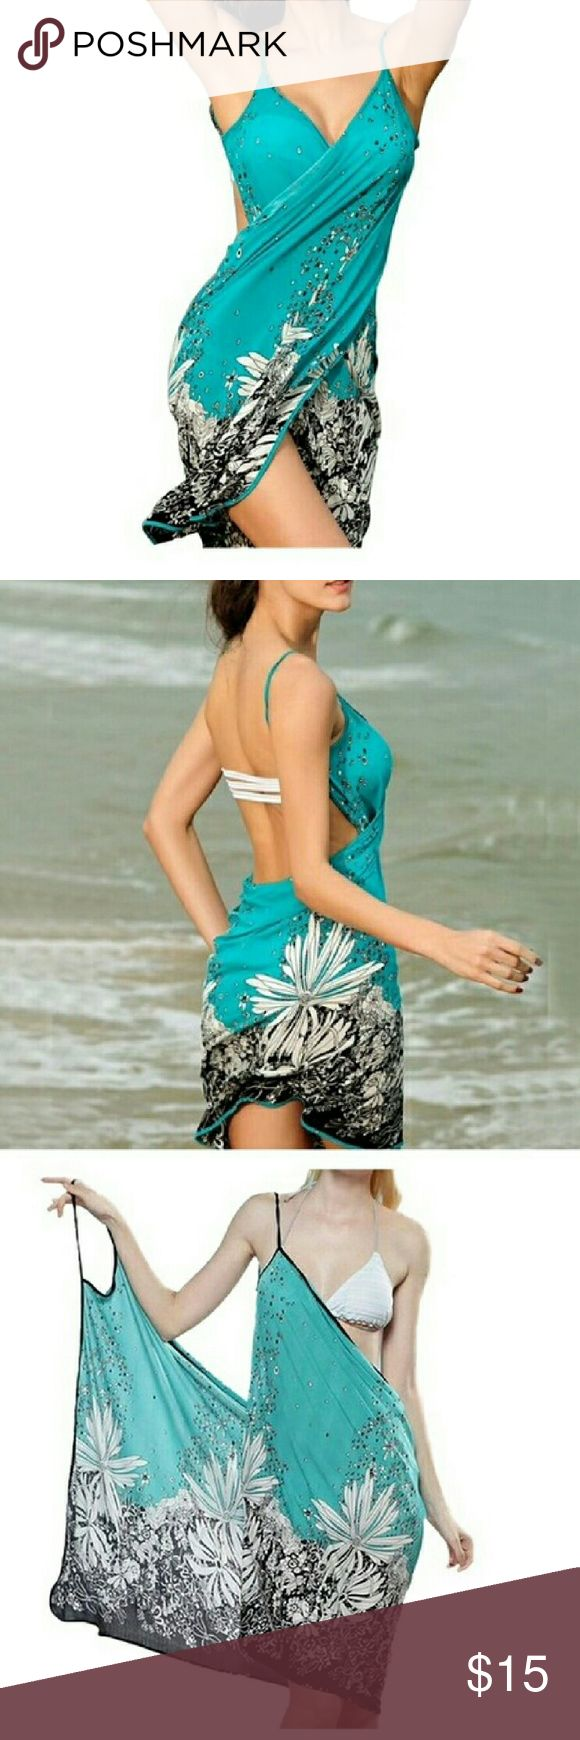 Bikini cover up swimwear This is a swimsuit cover up. Open back with shoulder straps. Swim Coverups